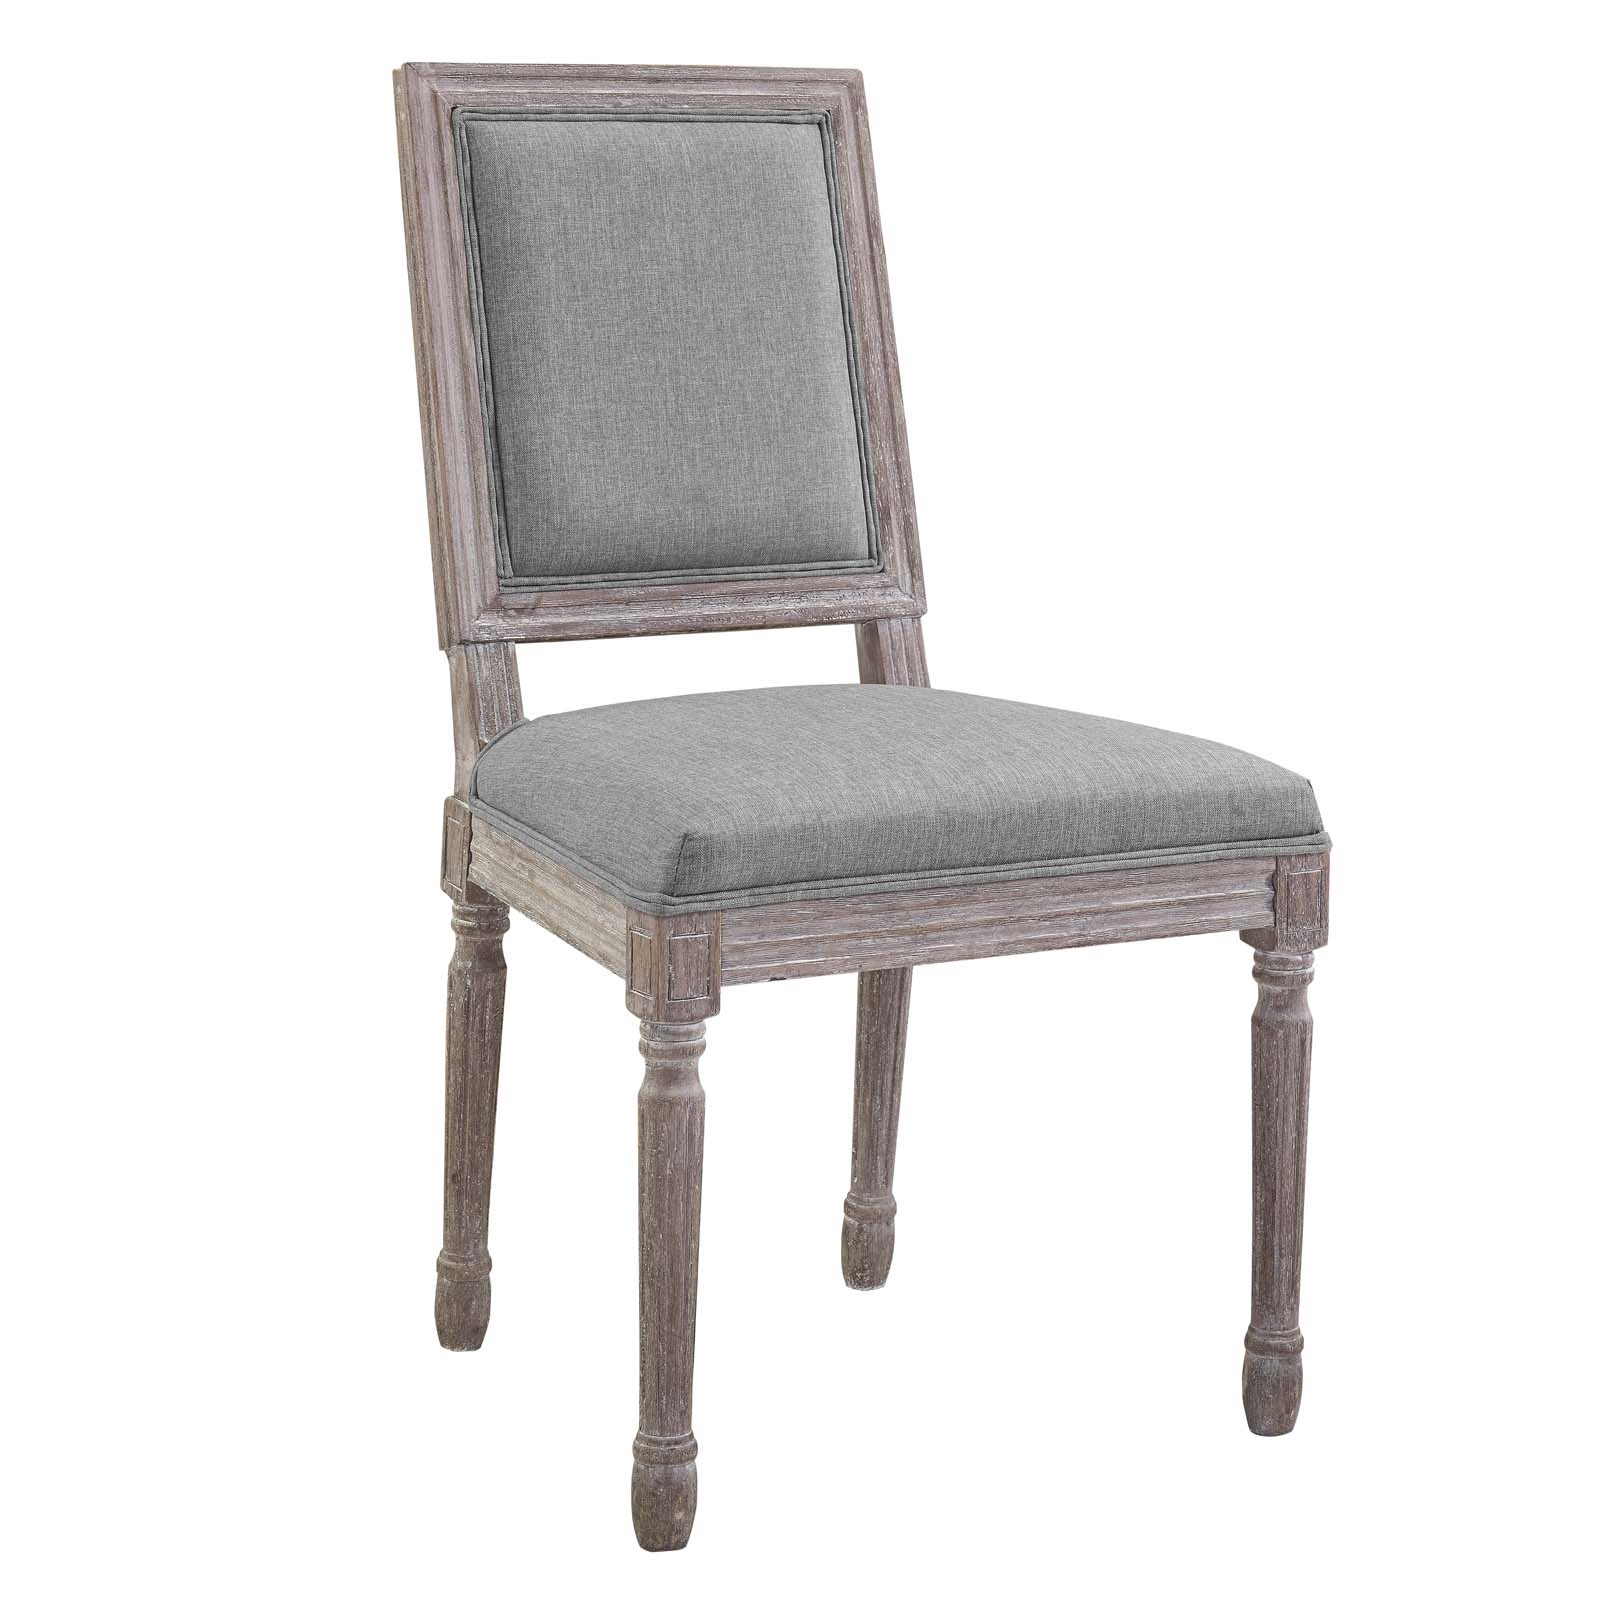 Court Vintage French Upholstered Fabric Dining Side Chair in Light Gray